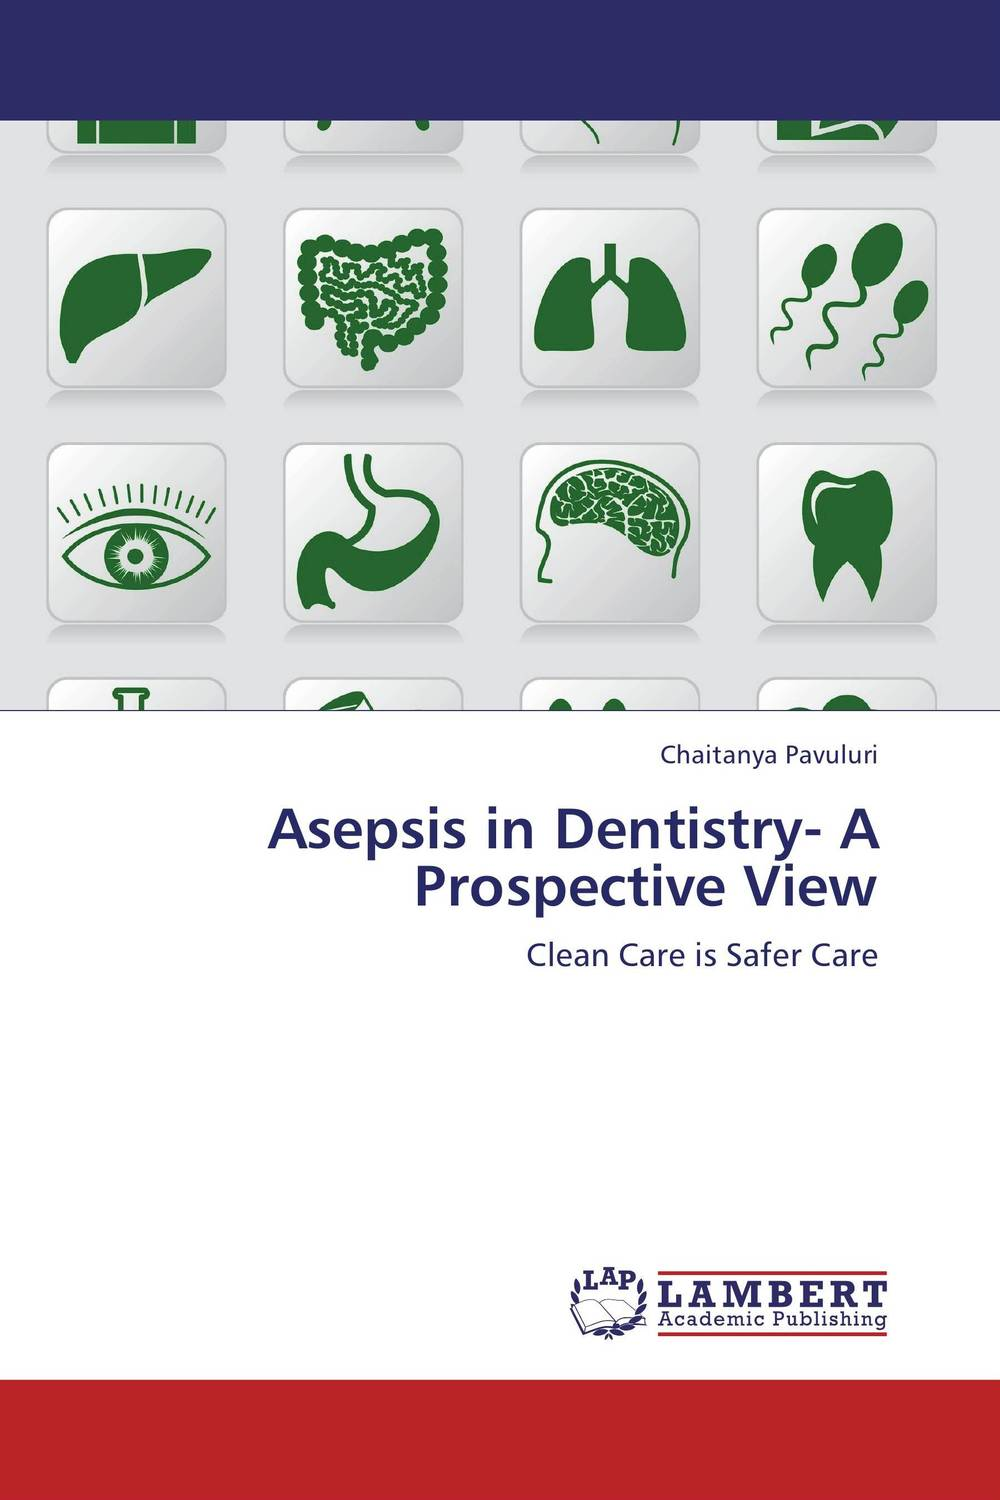 Asepsis in Dentistry- A Prospective View poonam mahajan and ajay mahajan concepts in public health dentistry